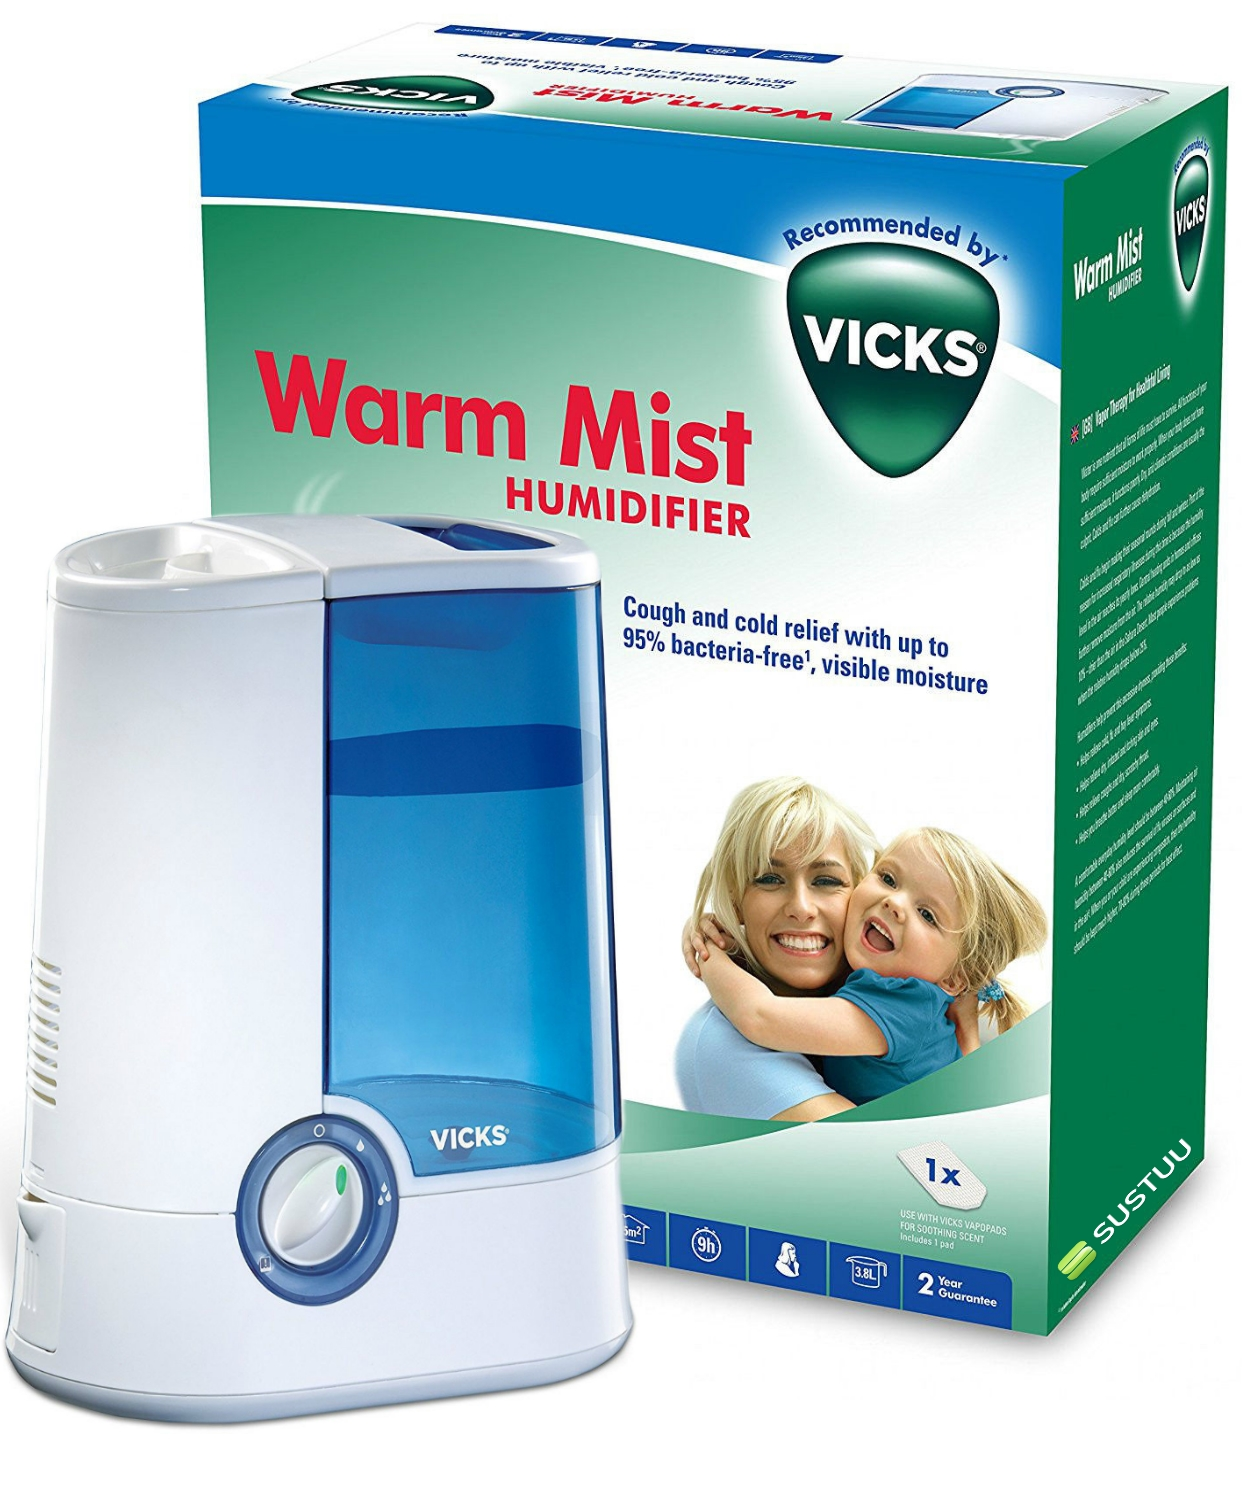 about Vicks VH750 3.8l Warm Mist Humidifier for Cough & Cold Relief #027448